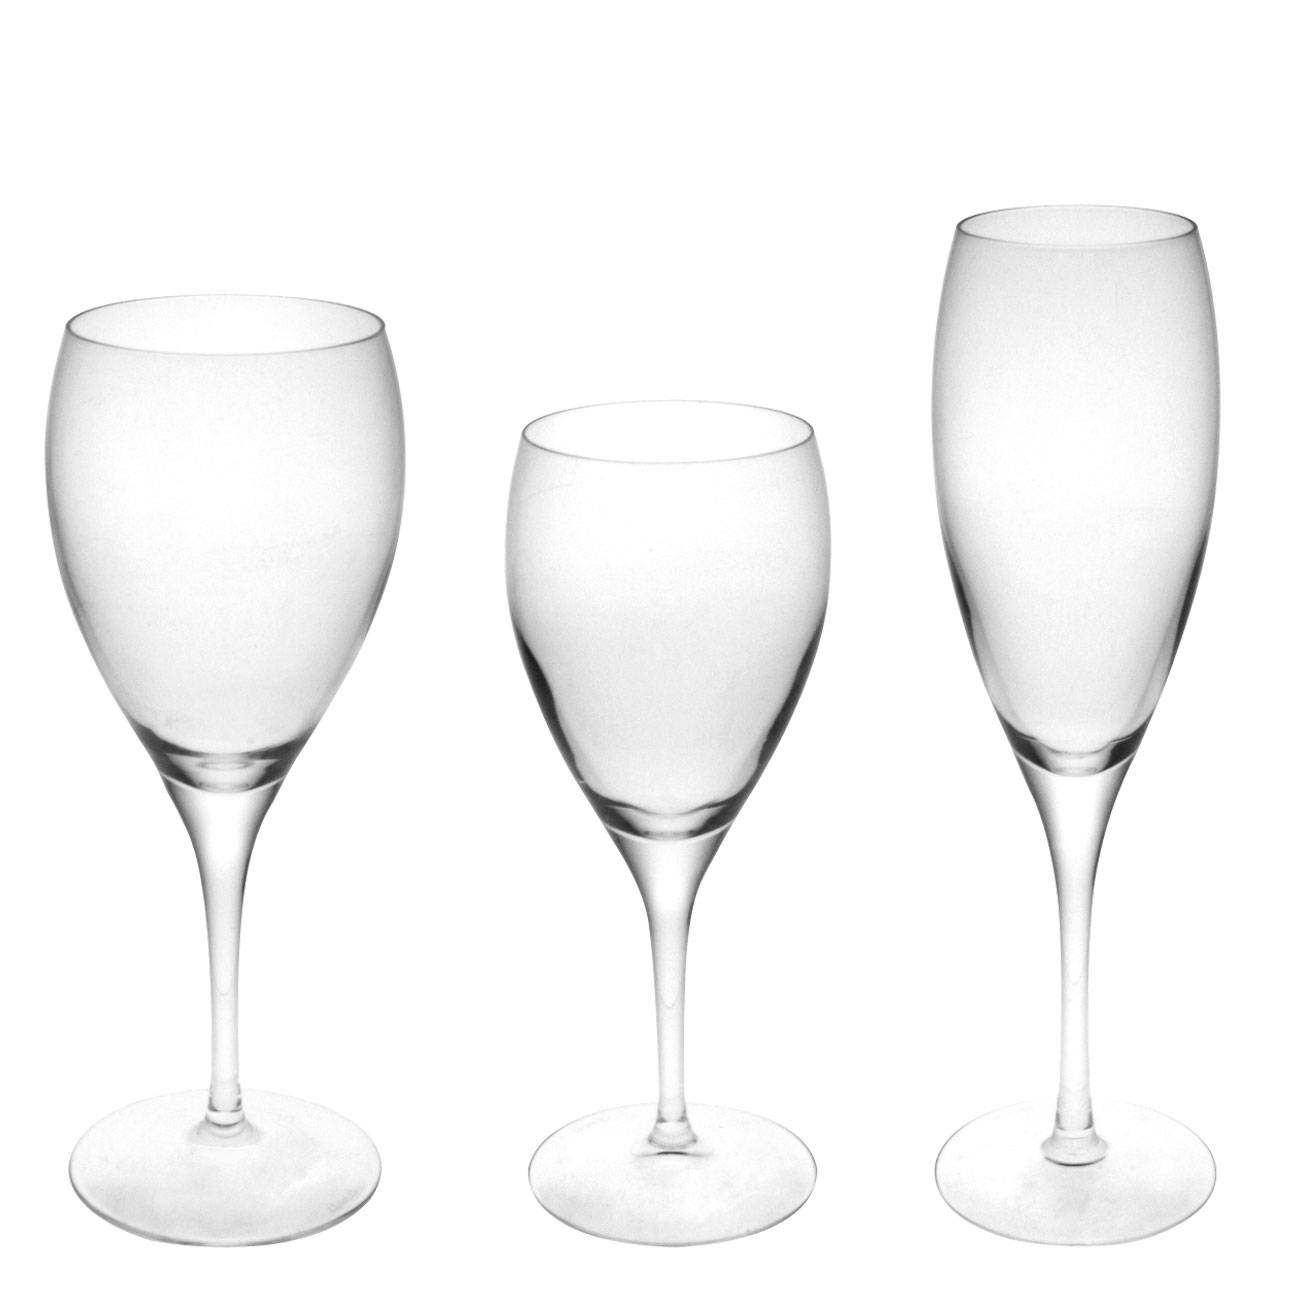 Christofle Albi Crystal Stemware Collection